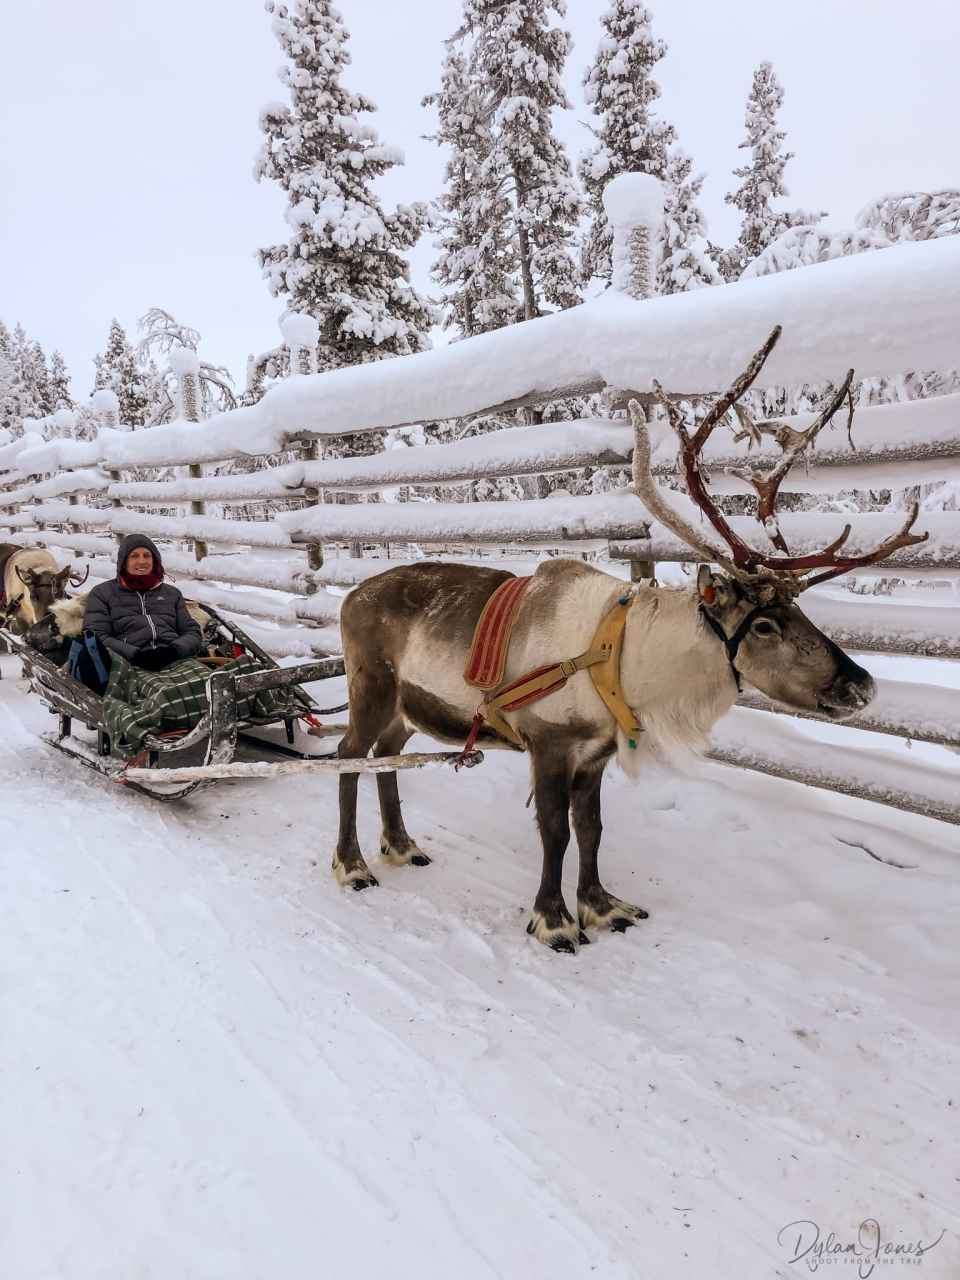 Me and my reindeer friend Saariselkä Lapland